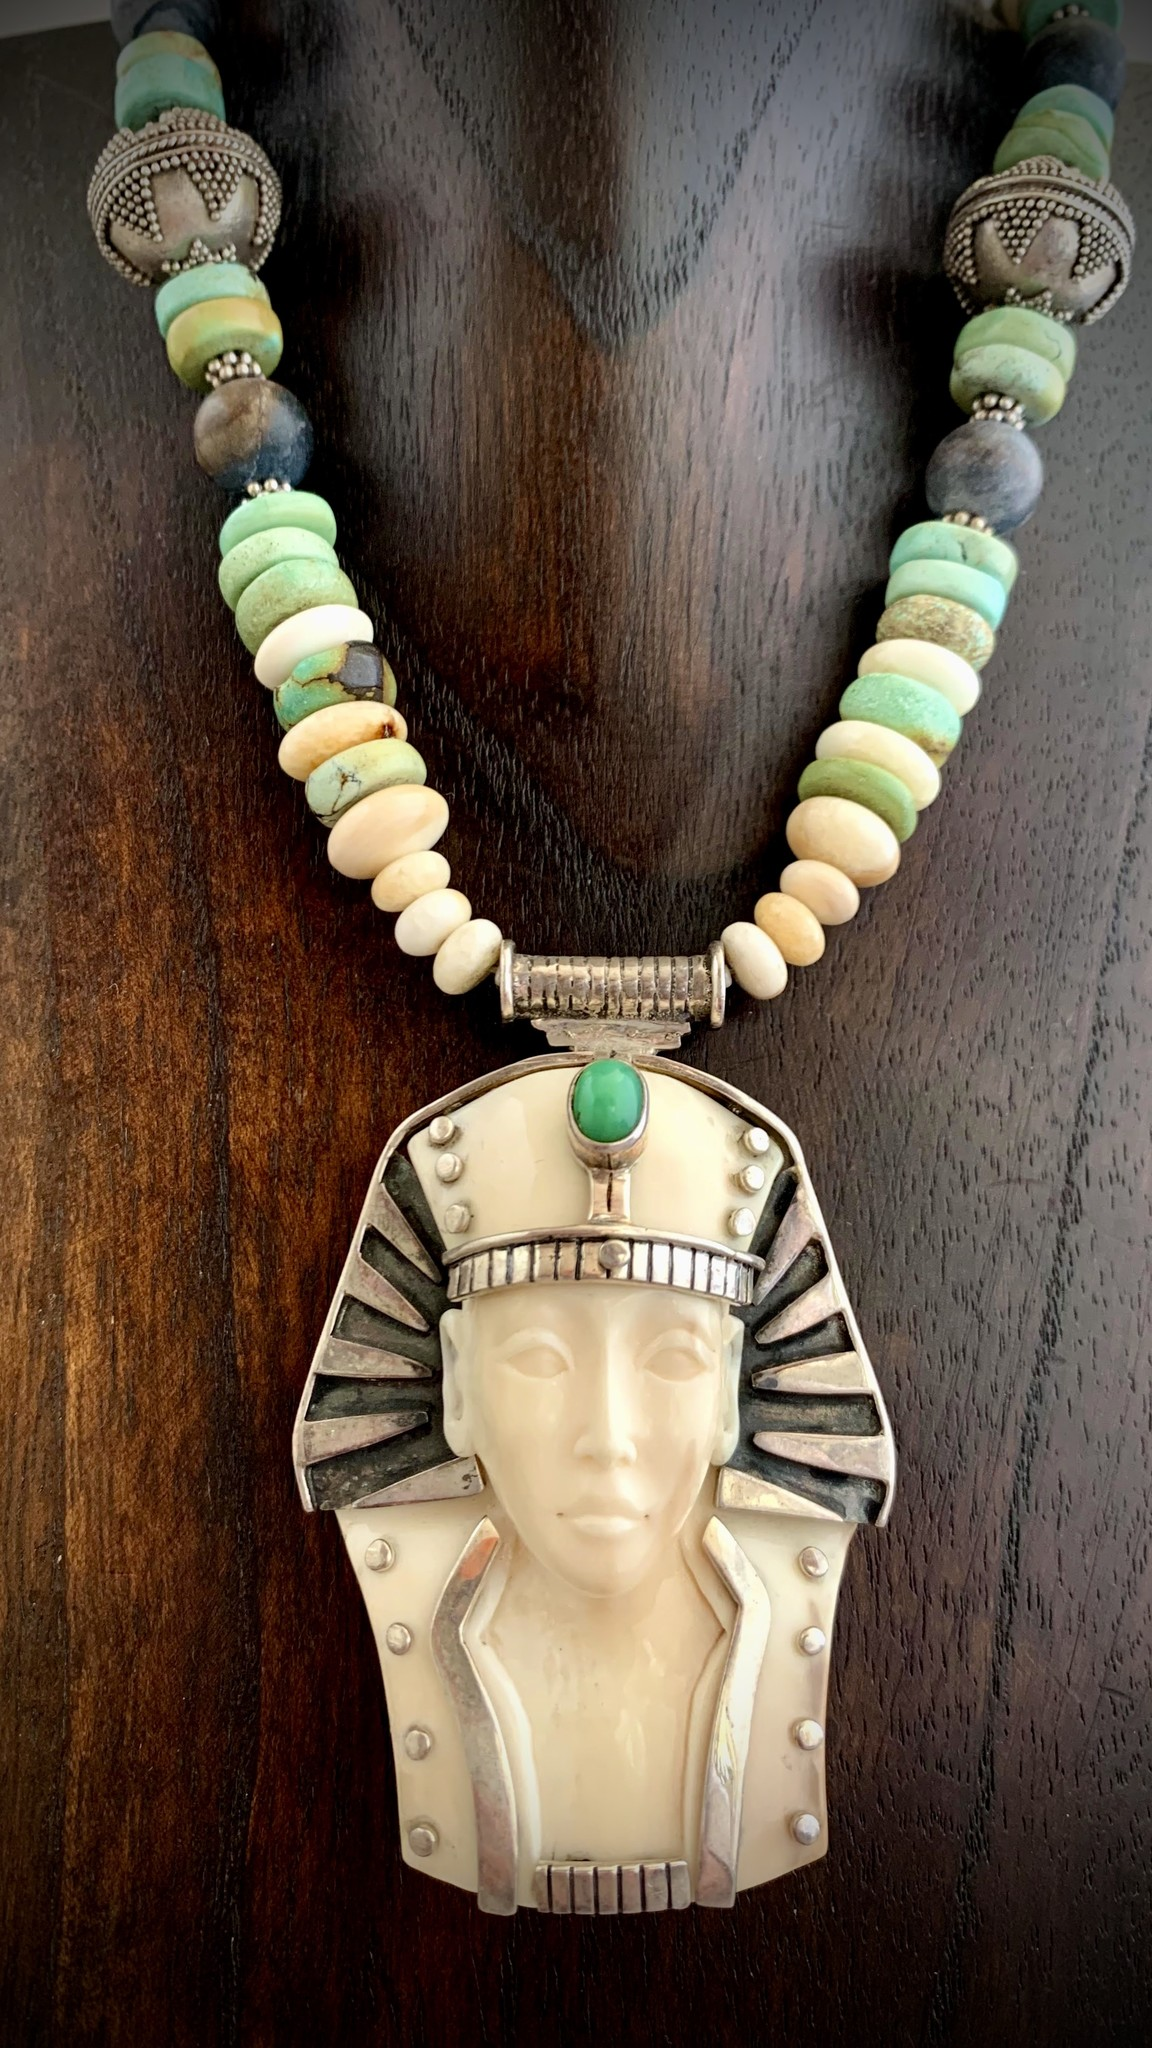 - King Tut, Fossil Walrus Ivory, Turquoise Necklace (#262)